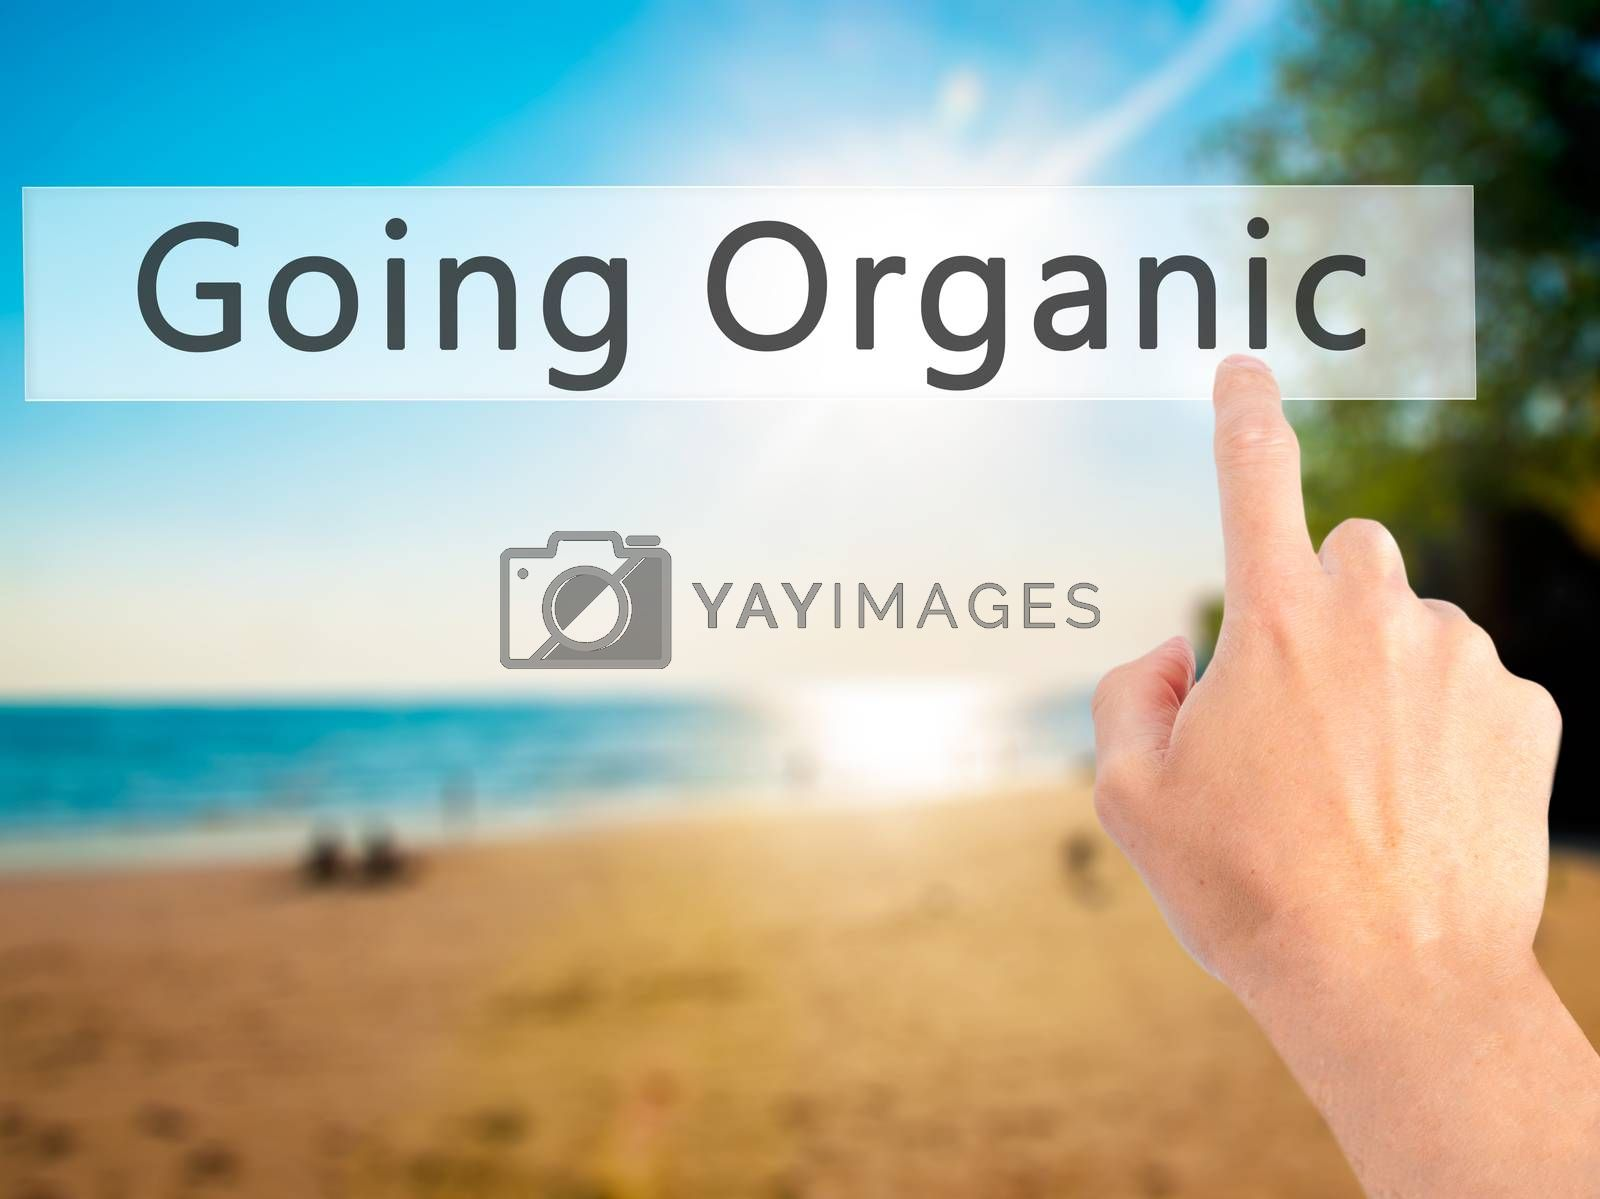 Going Organic - Hand pressing a button on blurred background con by netsay.net